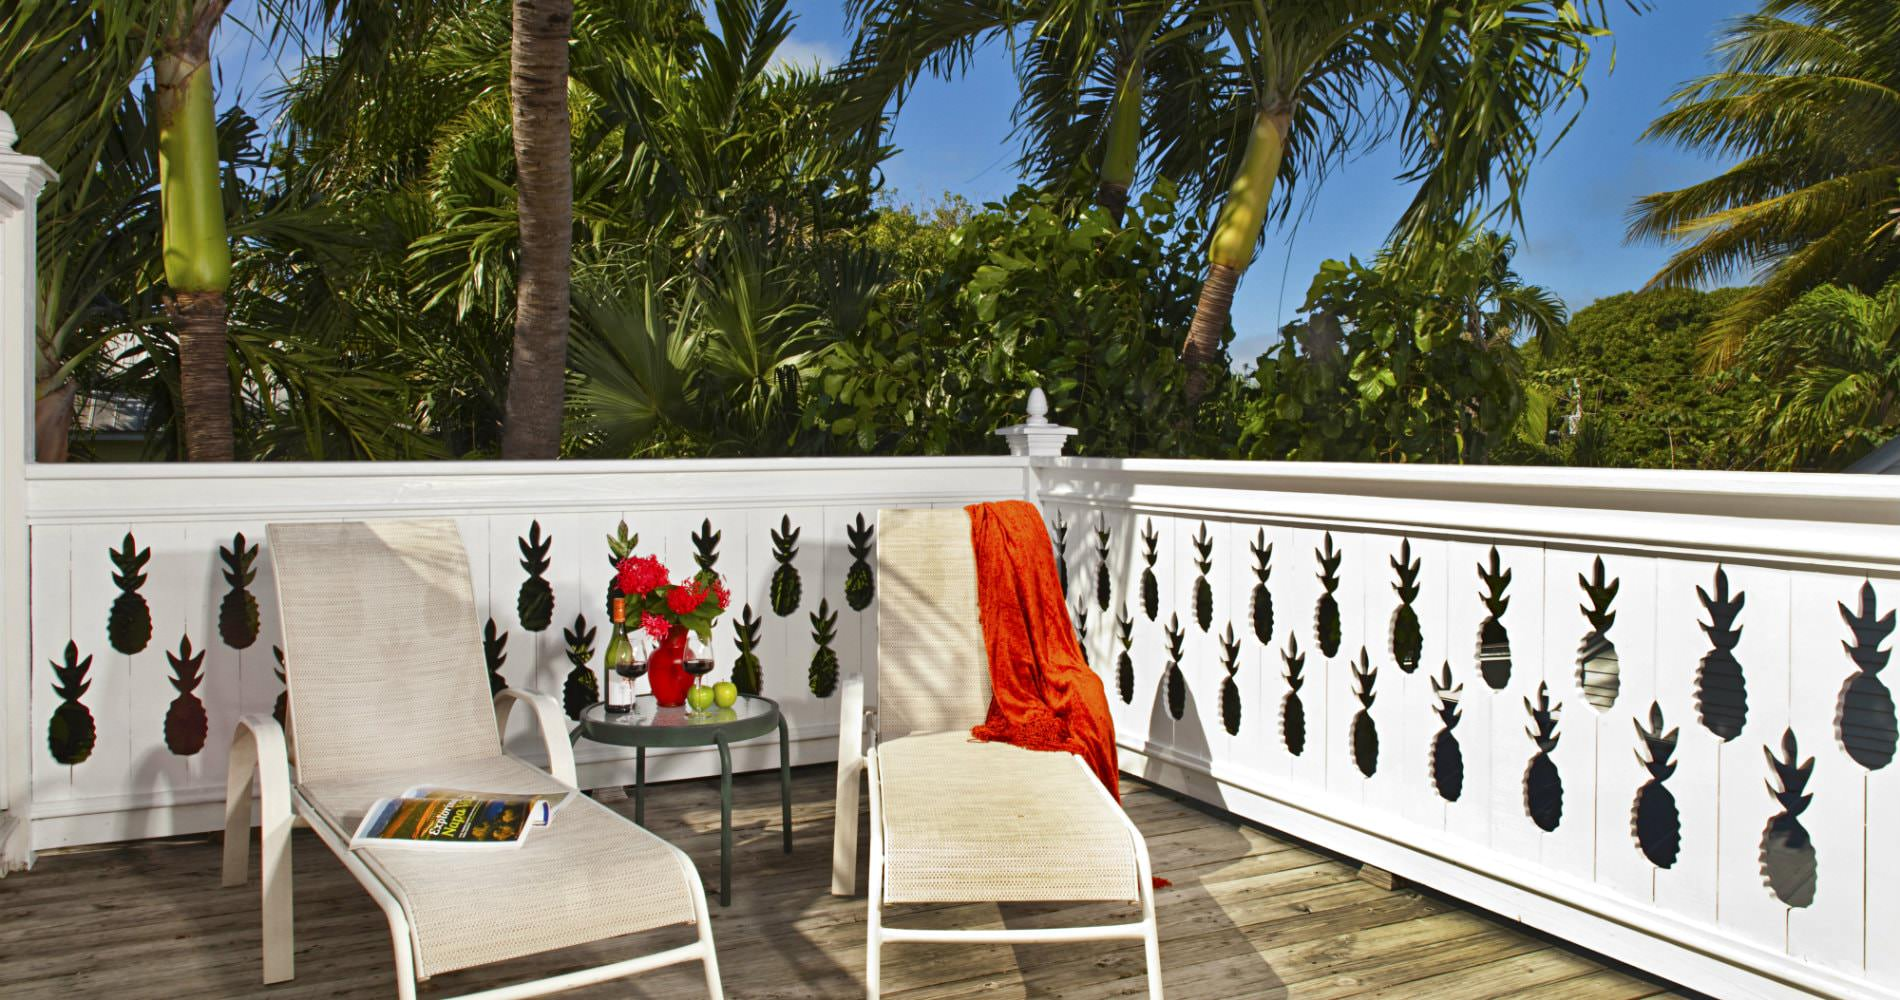 tropical-inn-key-west-patio.jpg